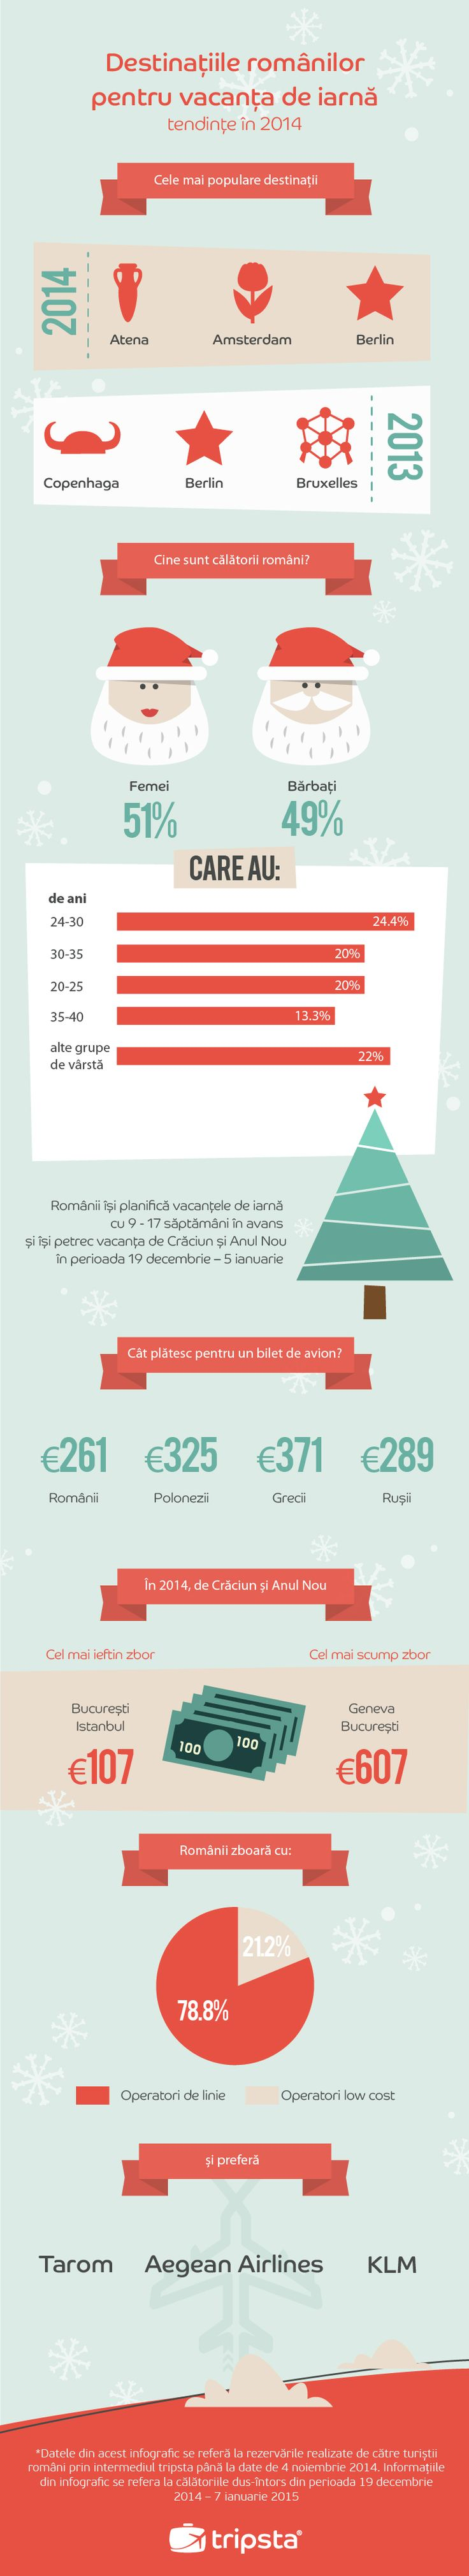 Xmas Travel Trends 2014 for the Romanian Market! #tripsta #infographic #xmas #travel #trends